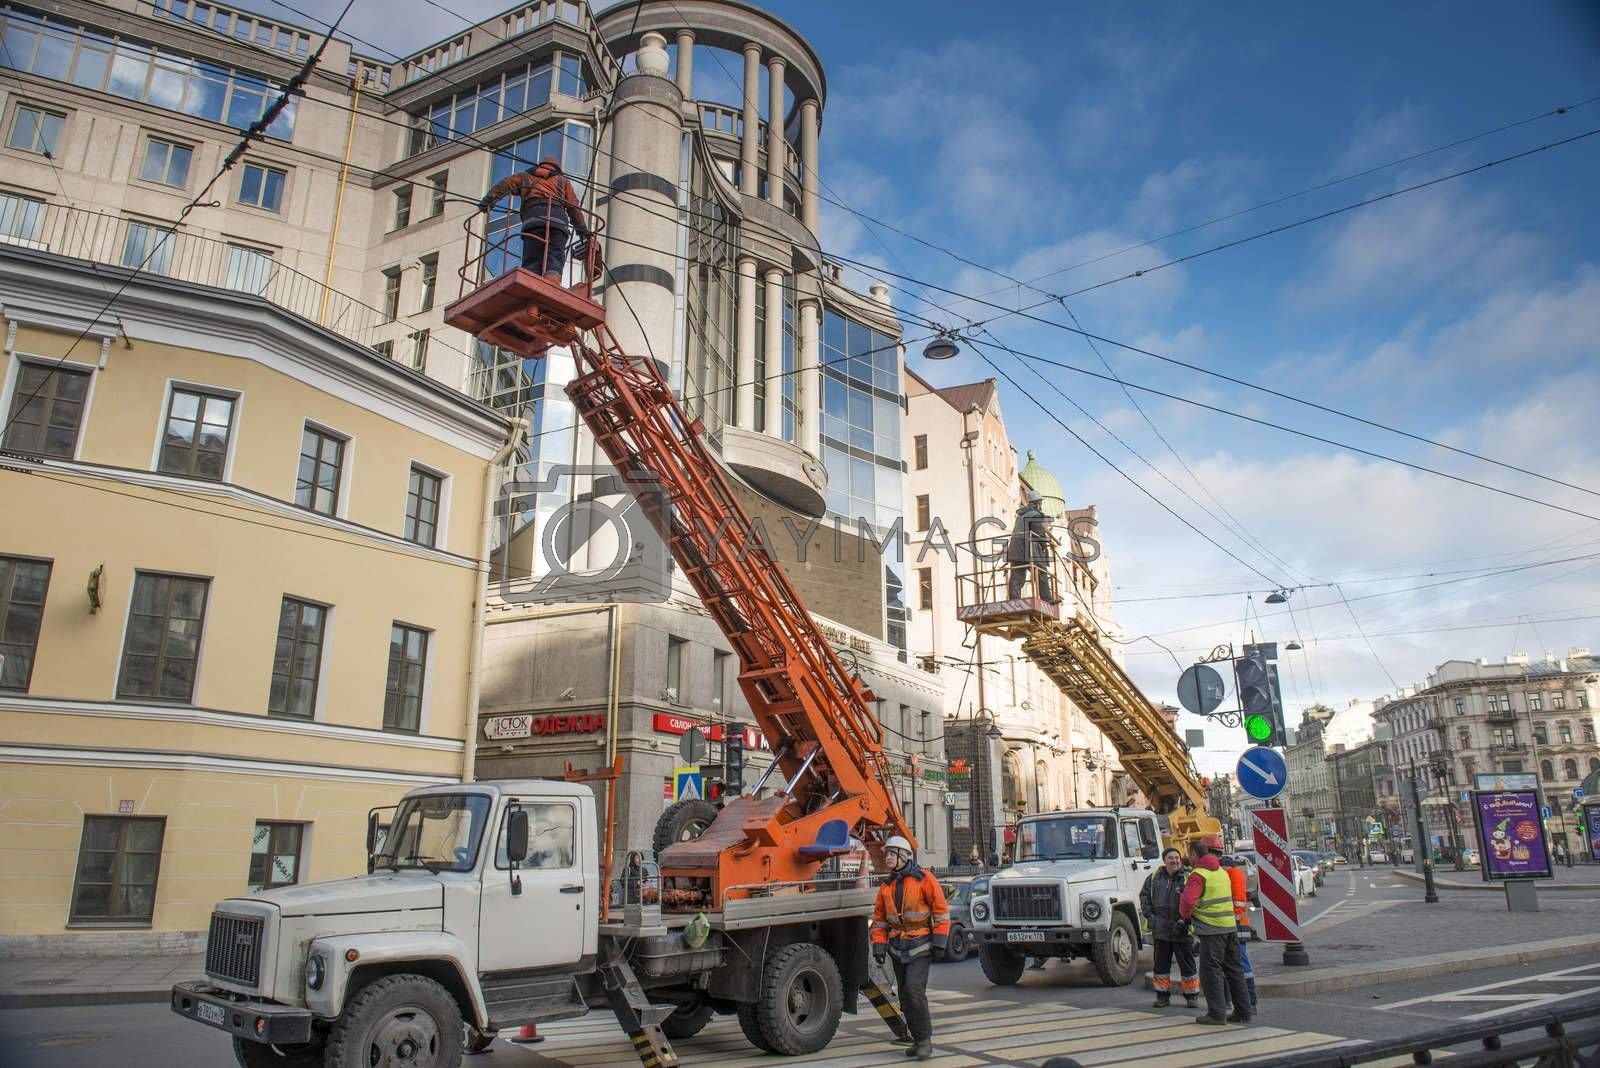 Utility workers irepairing tte electrical cable